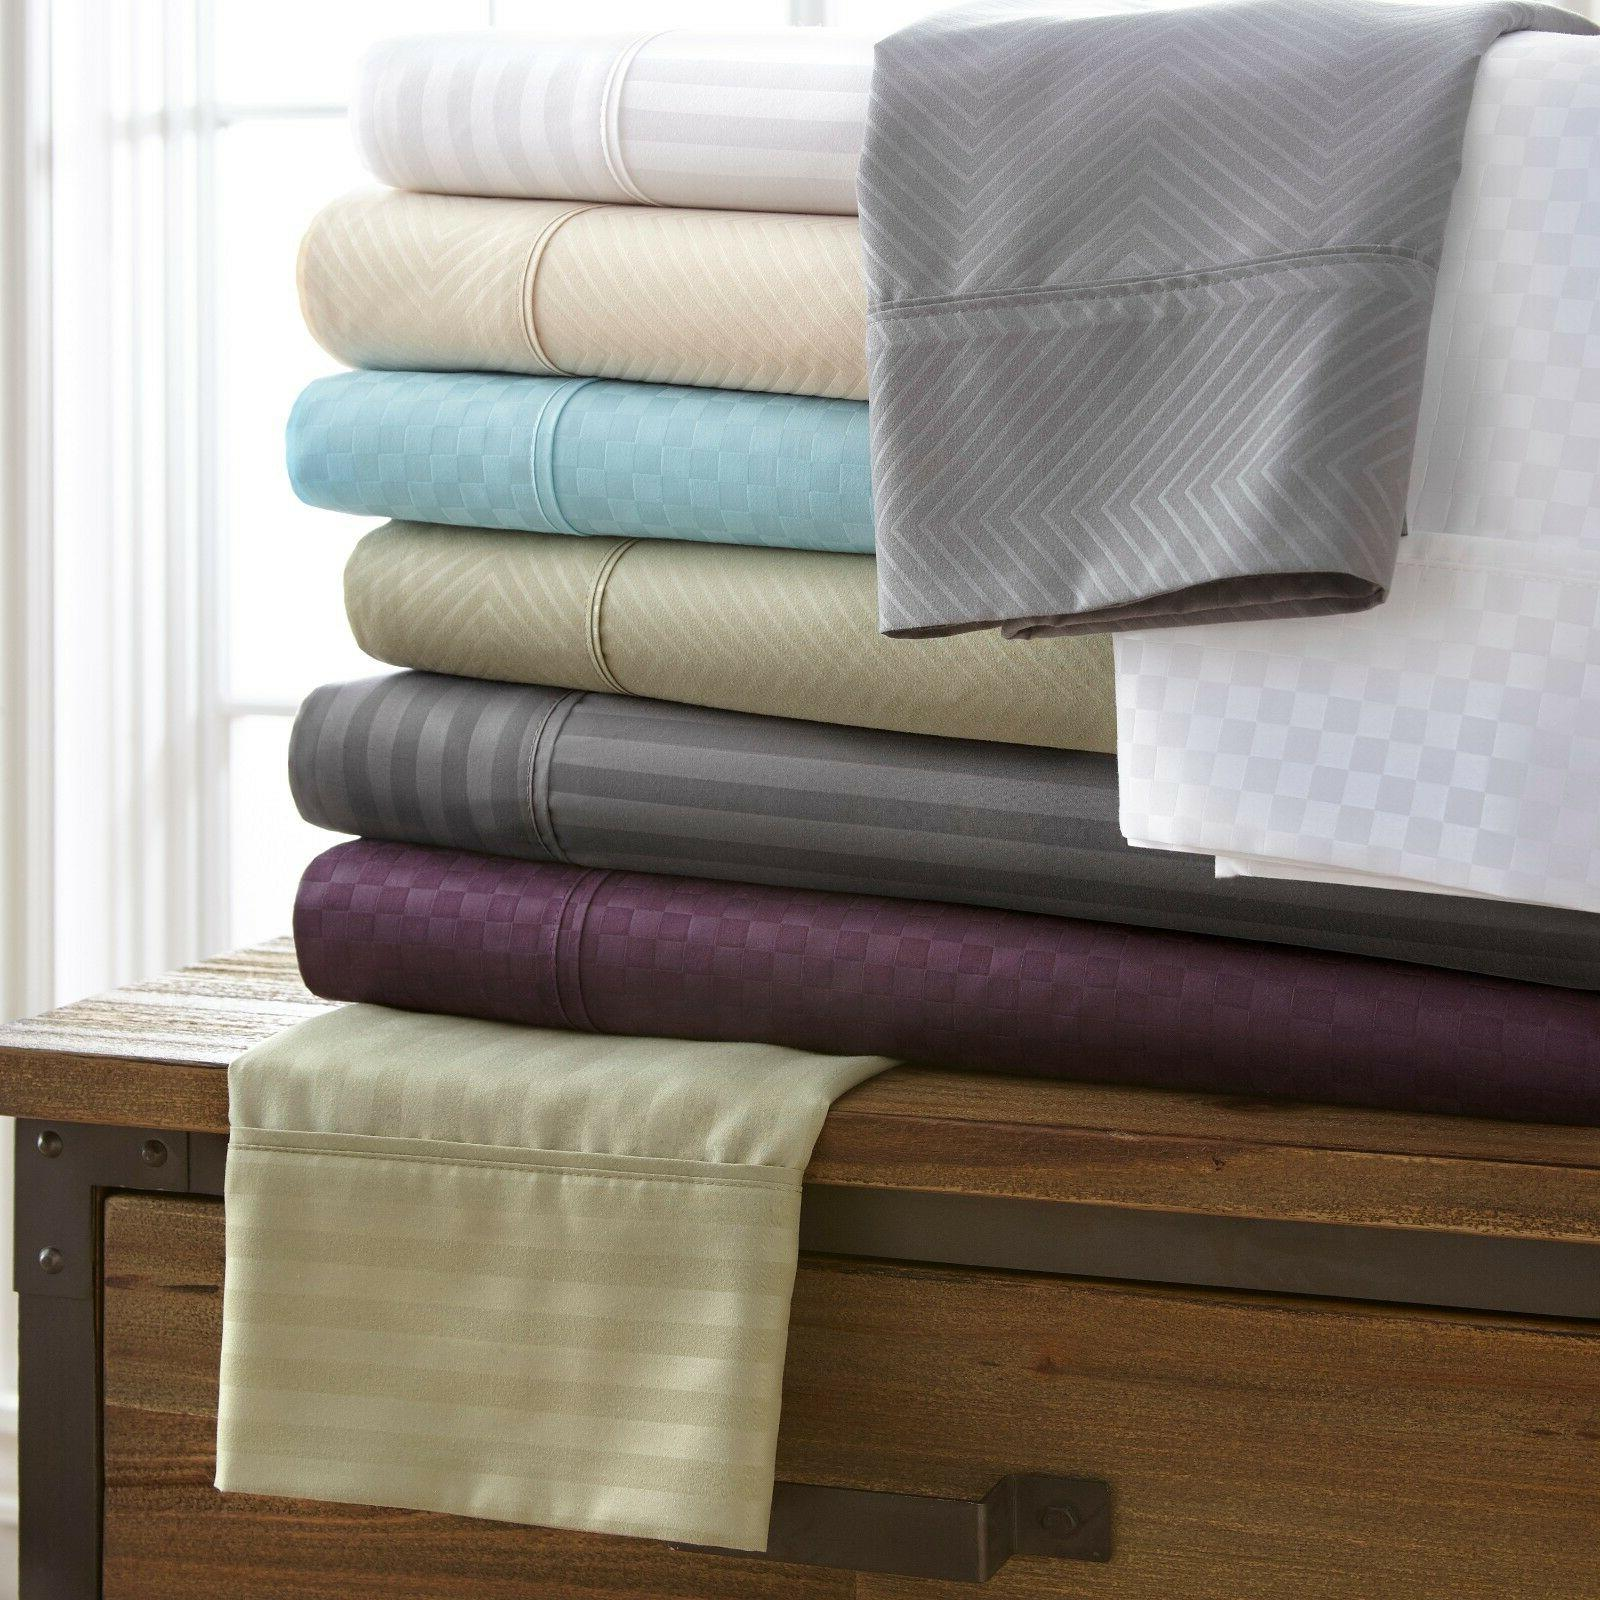 hotel quality 4 piece bed sheet sets